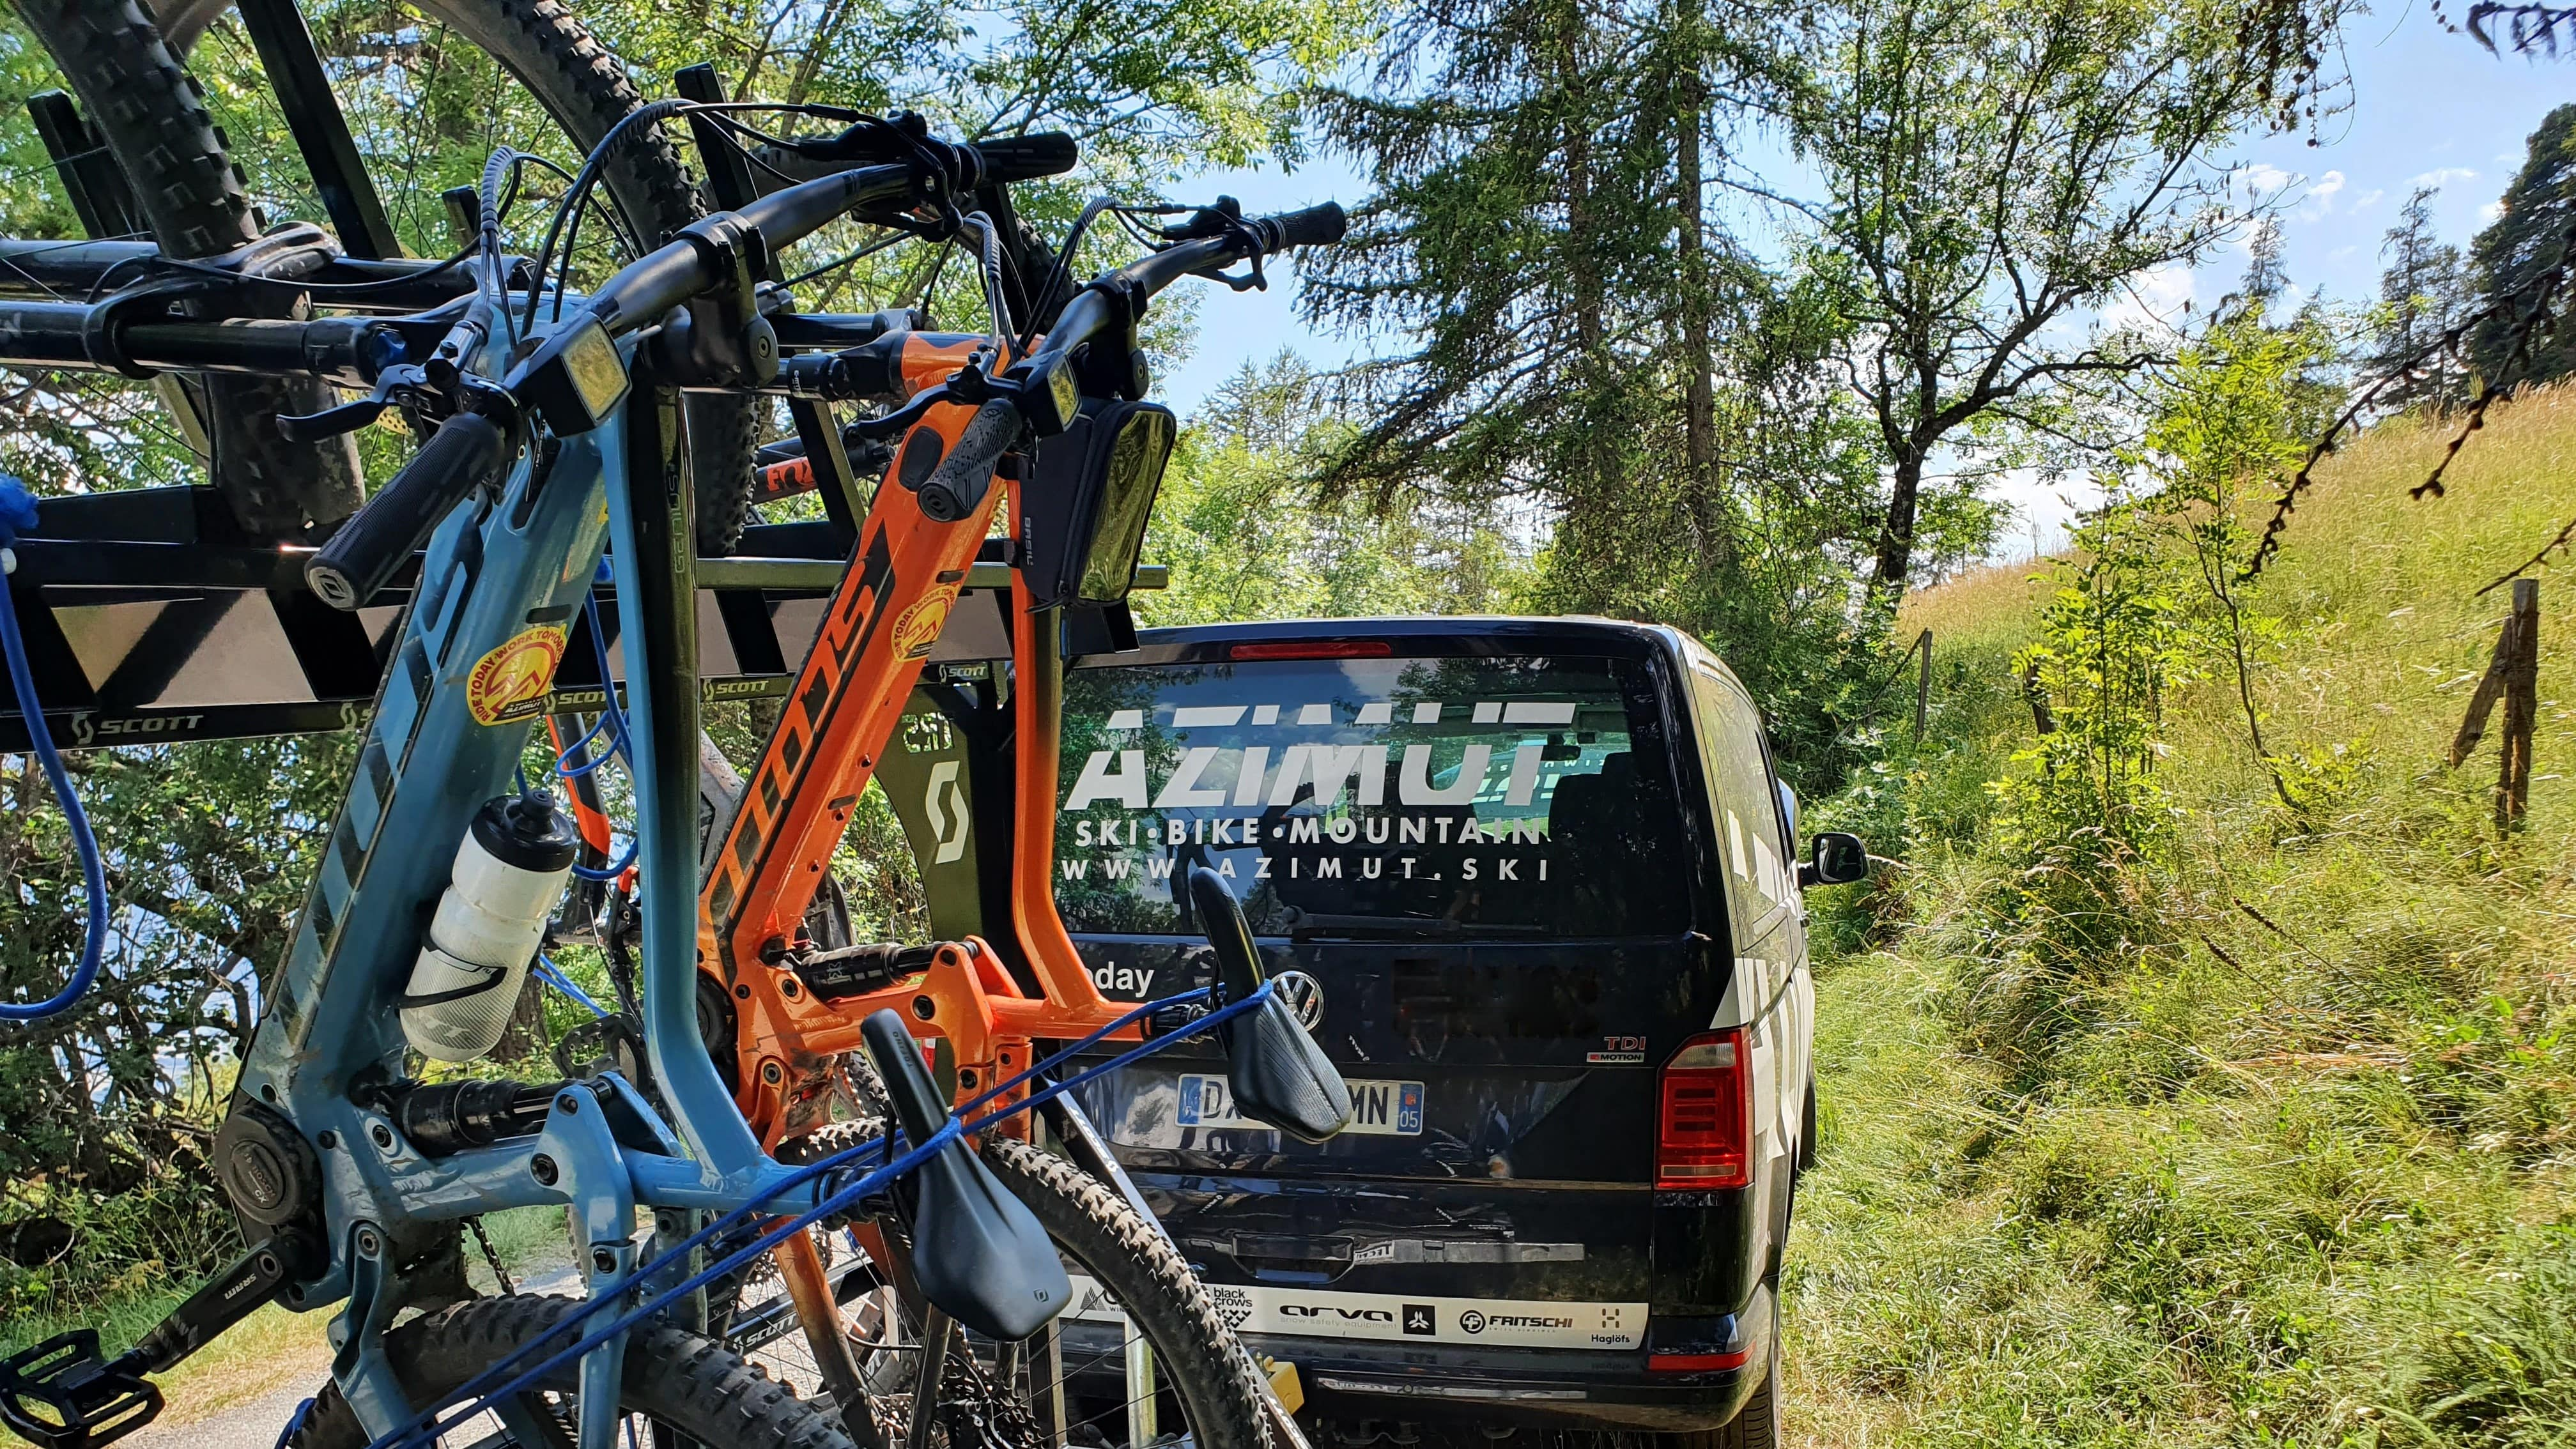 Shuttle avec guide - VTT & E-Bike - Azimut Ski Bike Mountain - www.azimut.ski